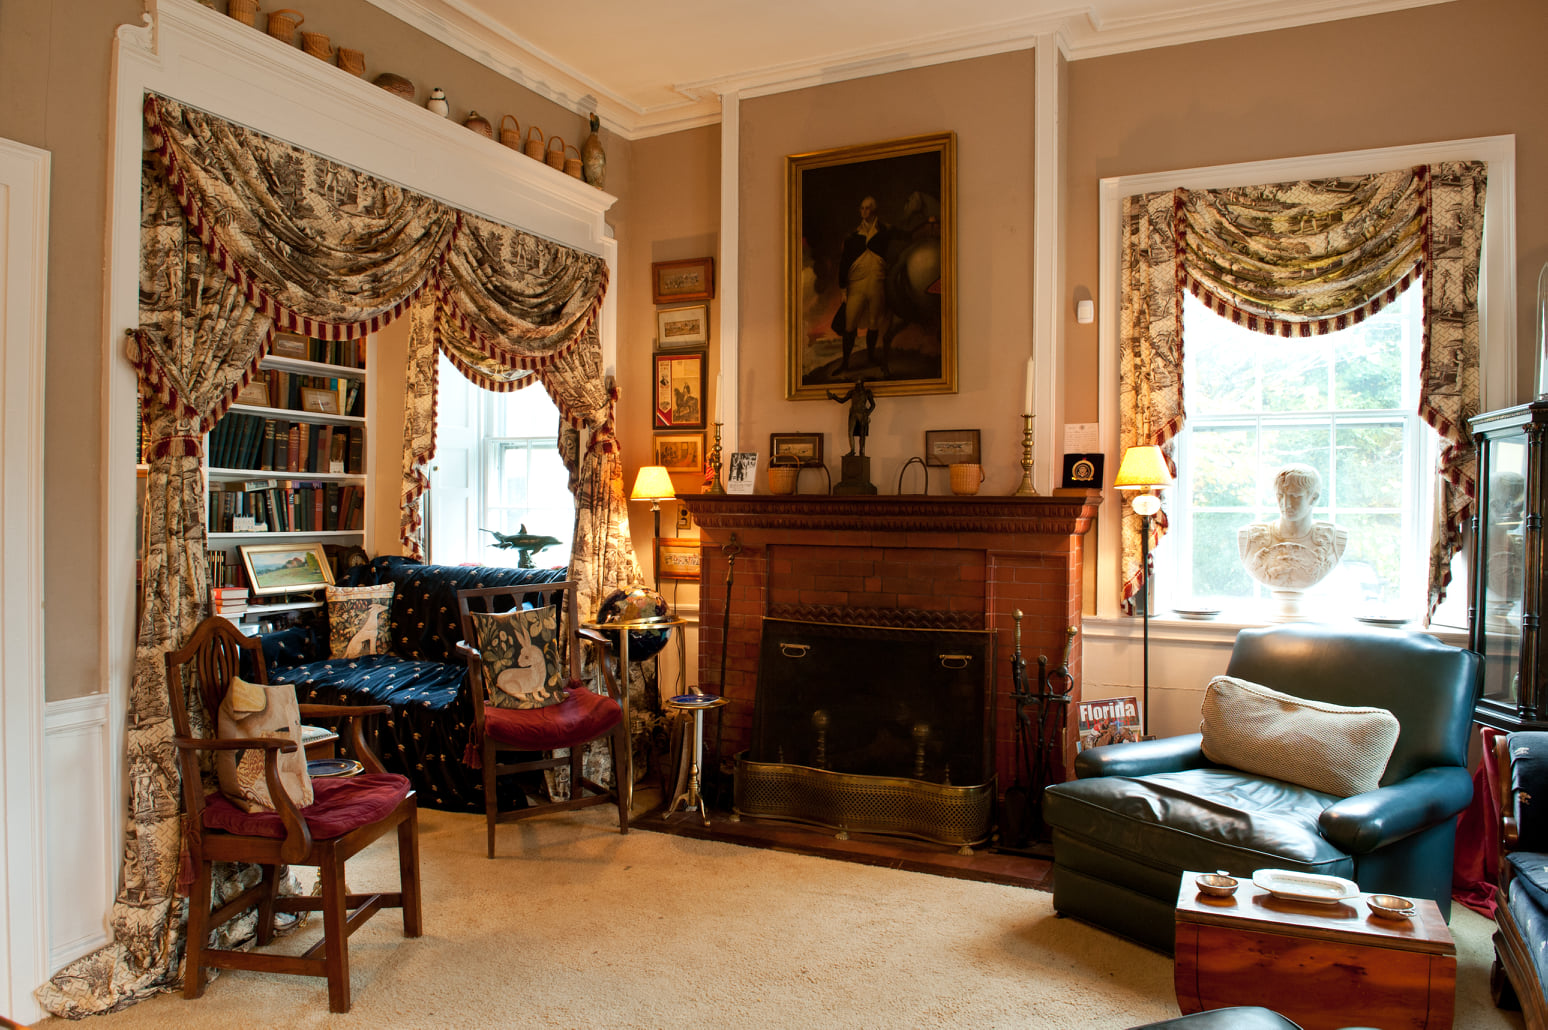 1825 Wedding Cake House In Kennebunk Maine Photos Pricey Pads